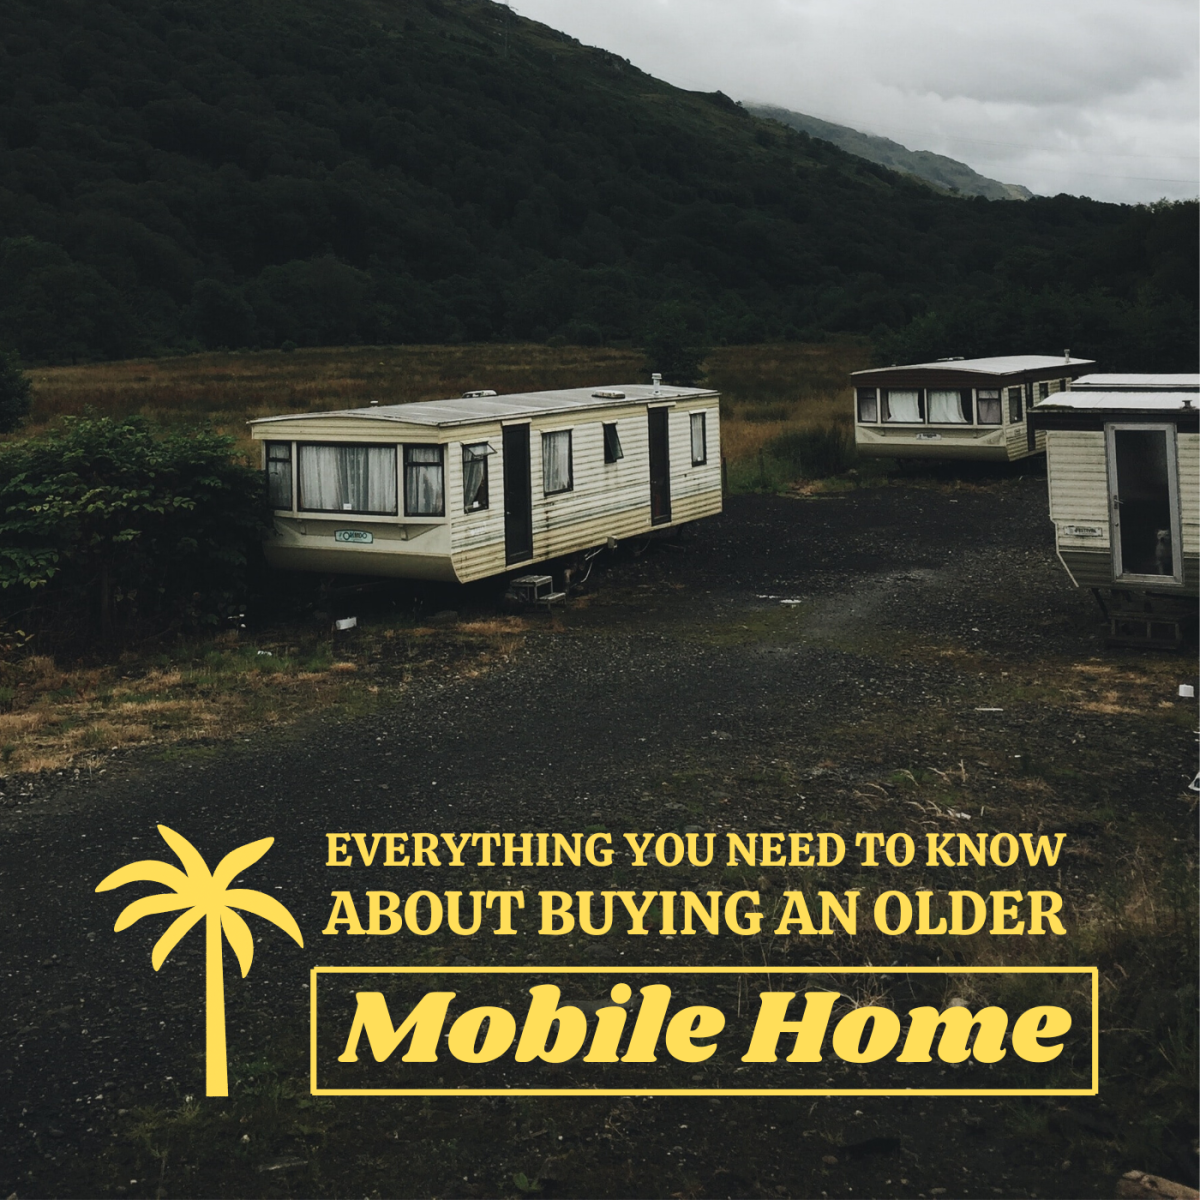 You can likely find a good deal on a trailer home built in the 70s or 80s, but before you seal the deal, be sure to consider the following factors.